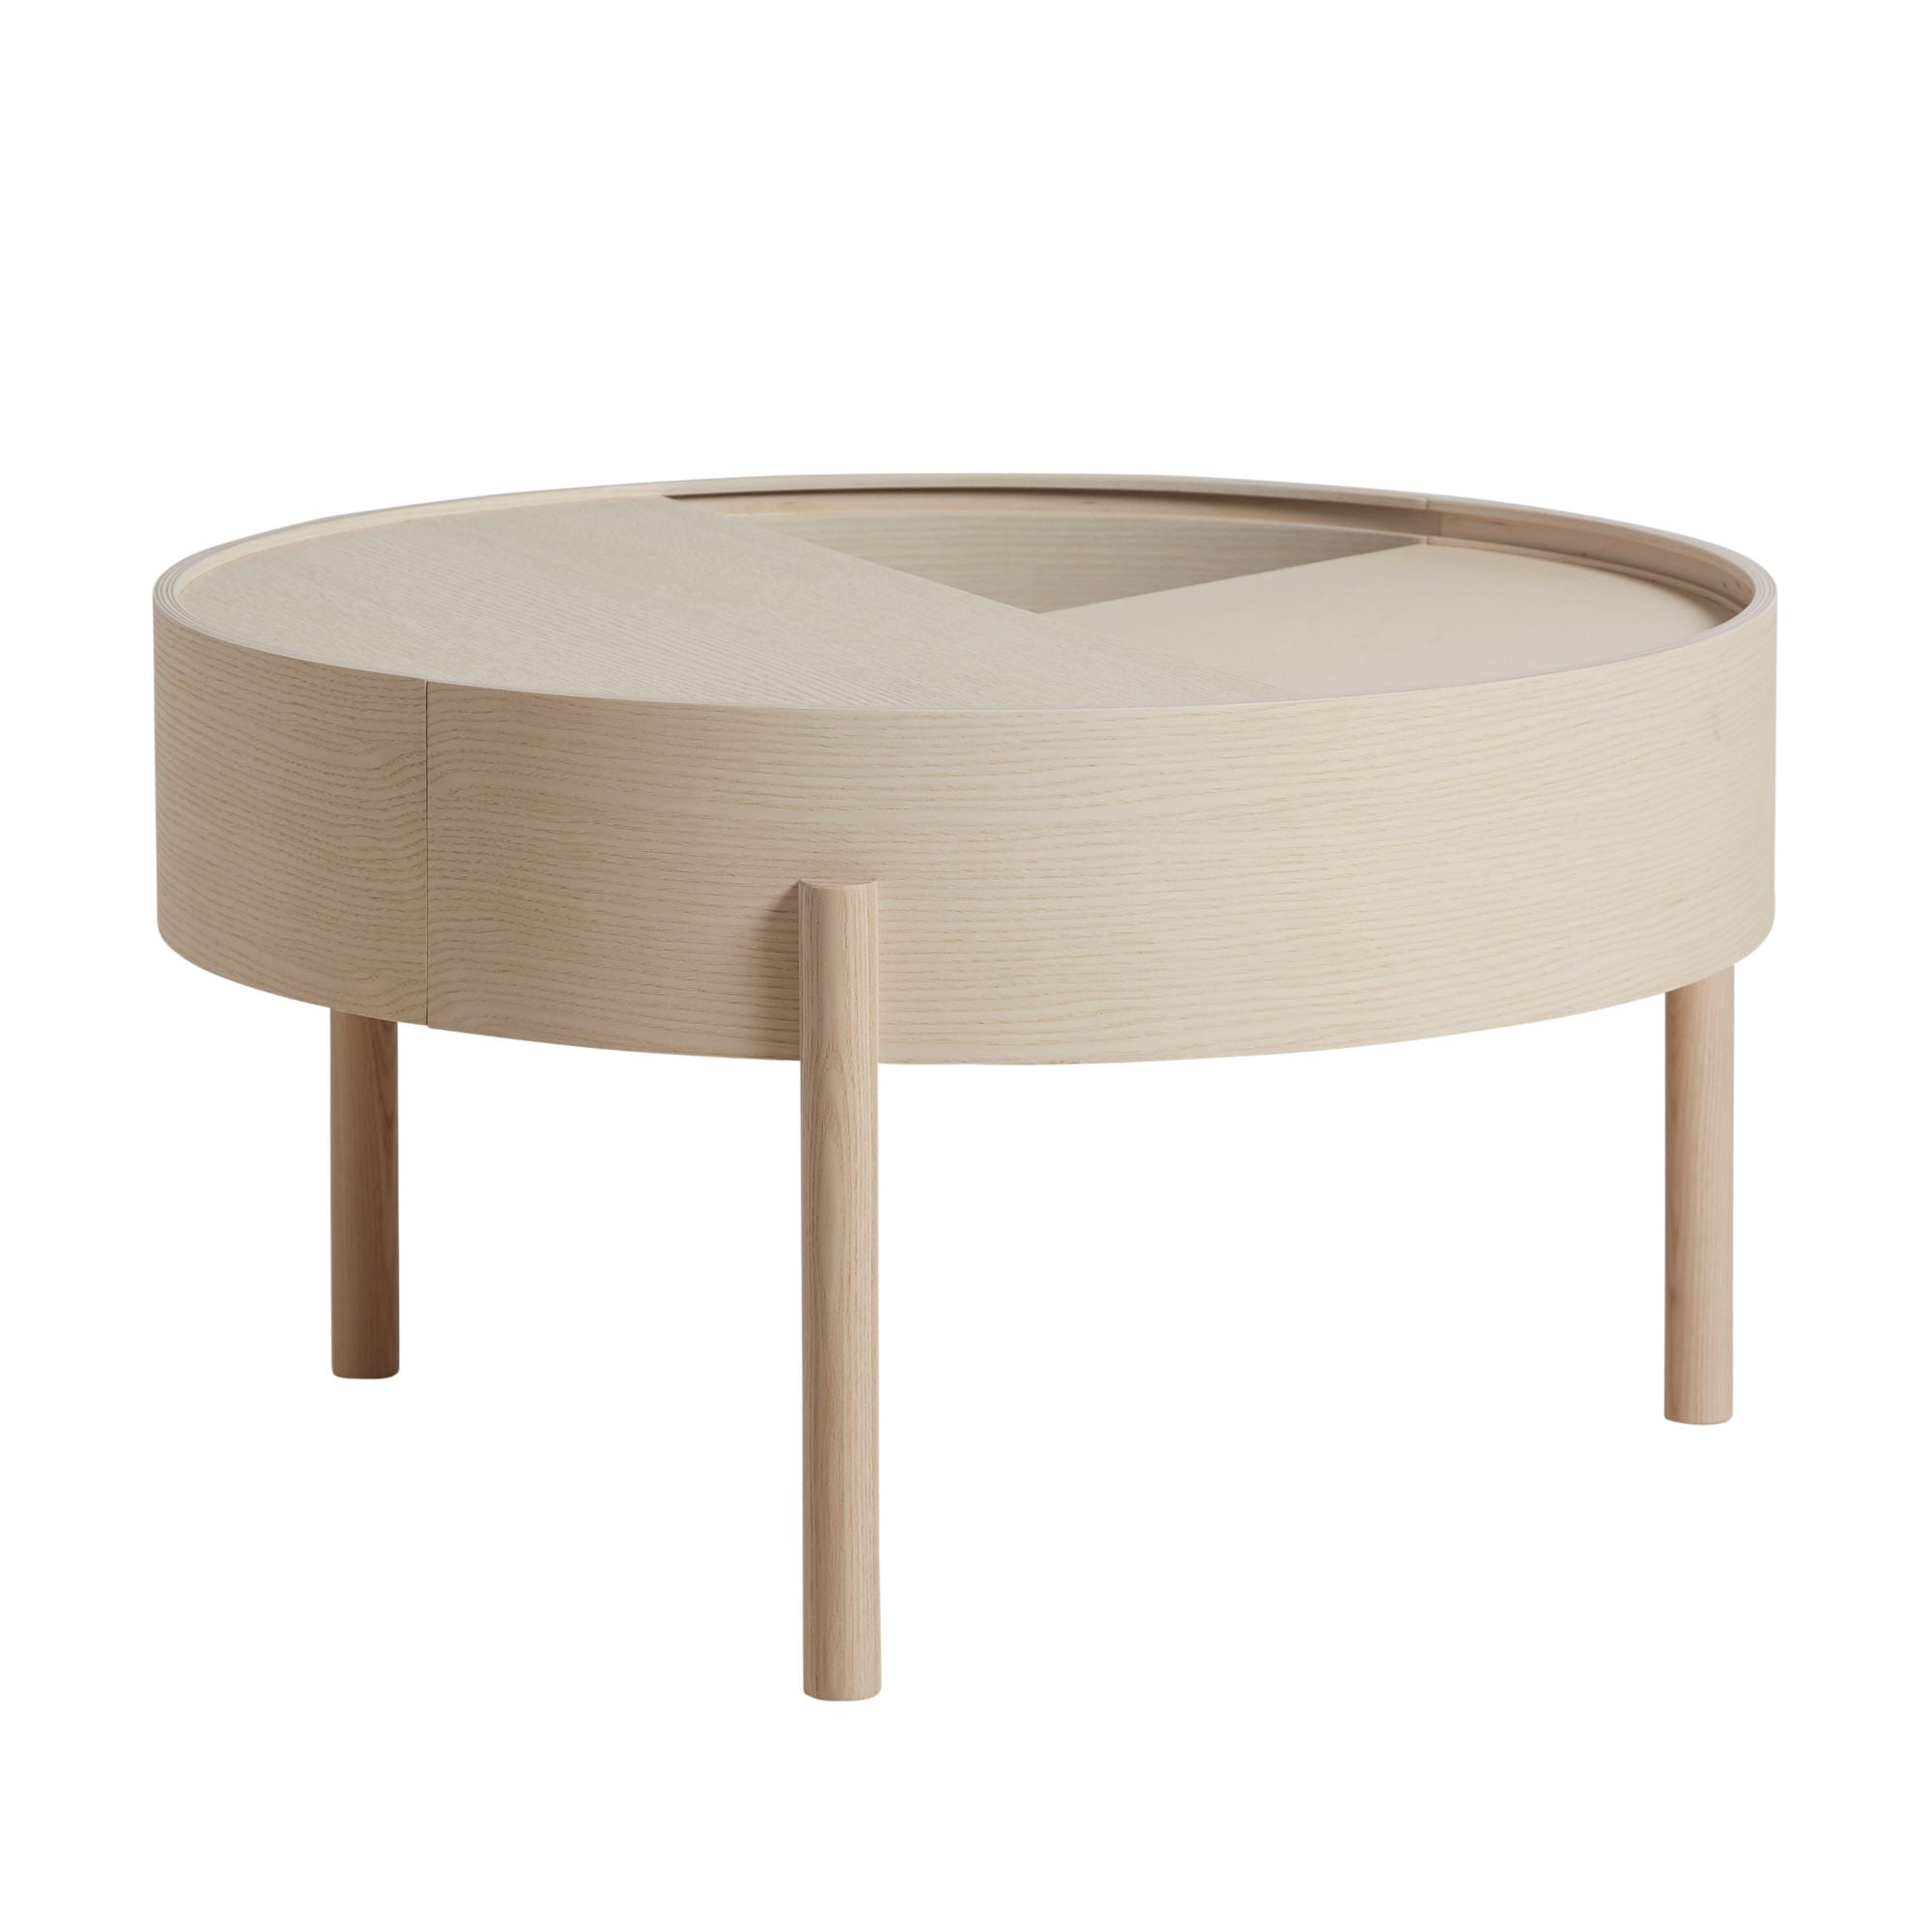 Woud Arc Coffee Table , White Pigmented Ash